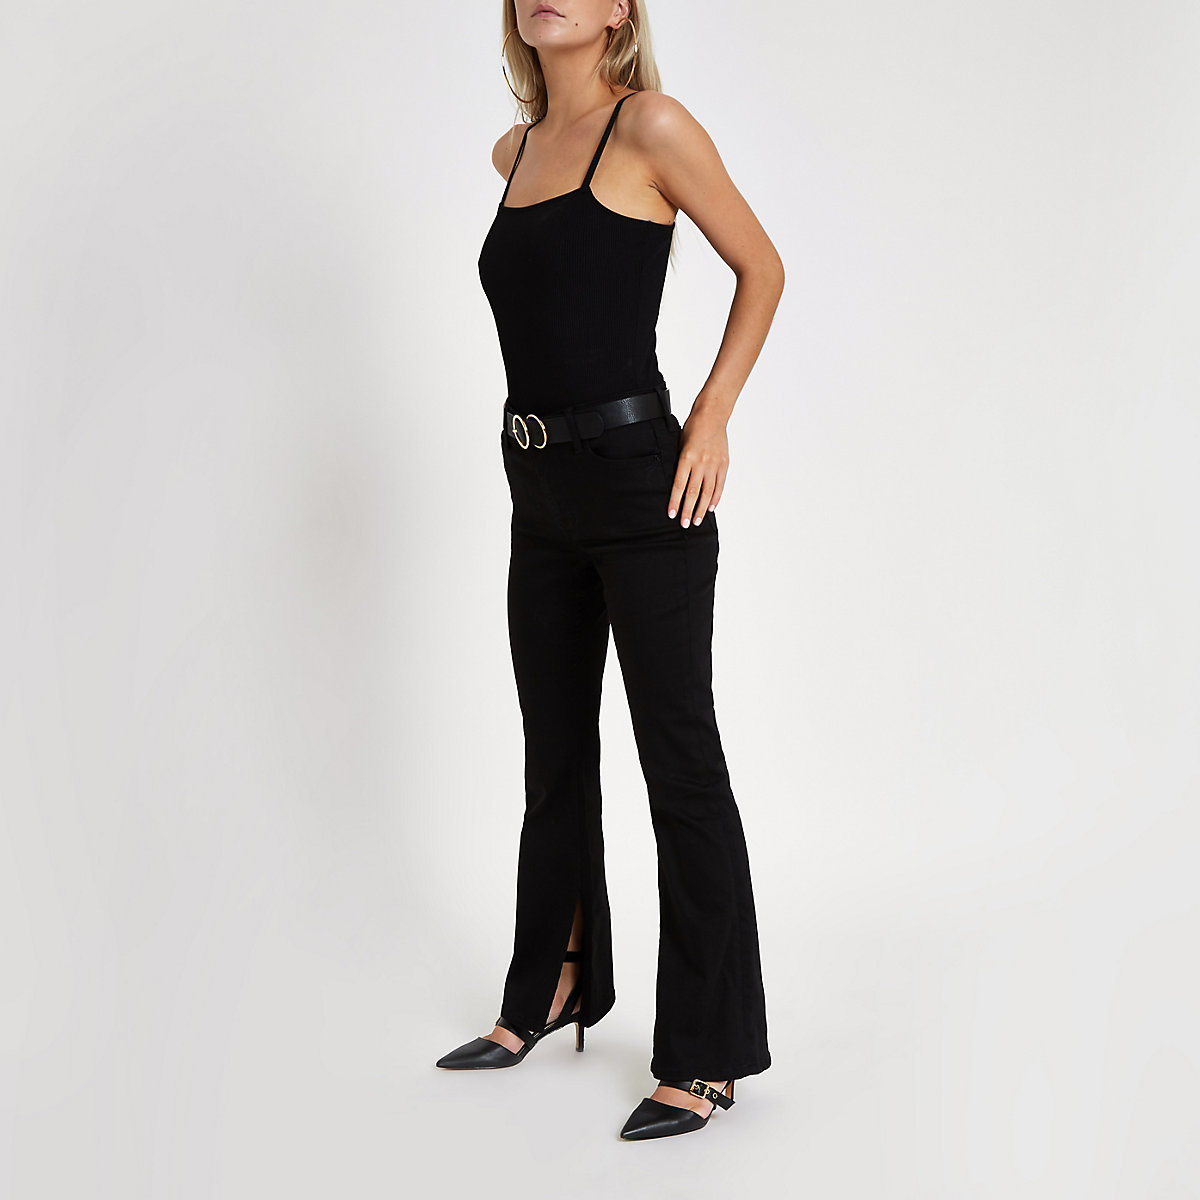 Petite black high rise flared jeans